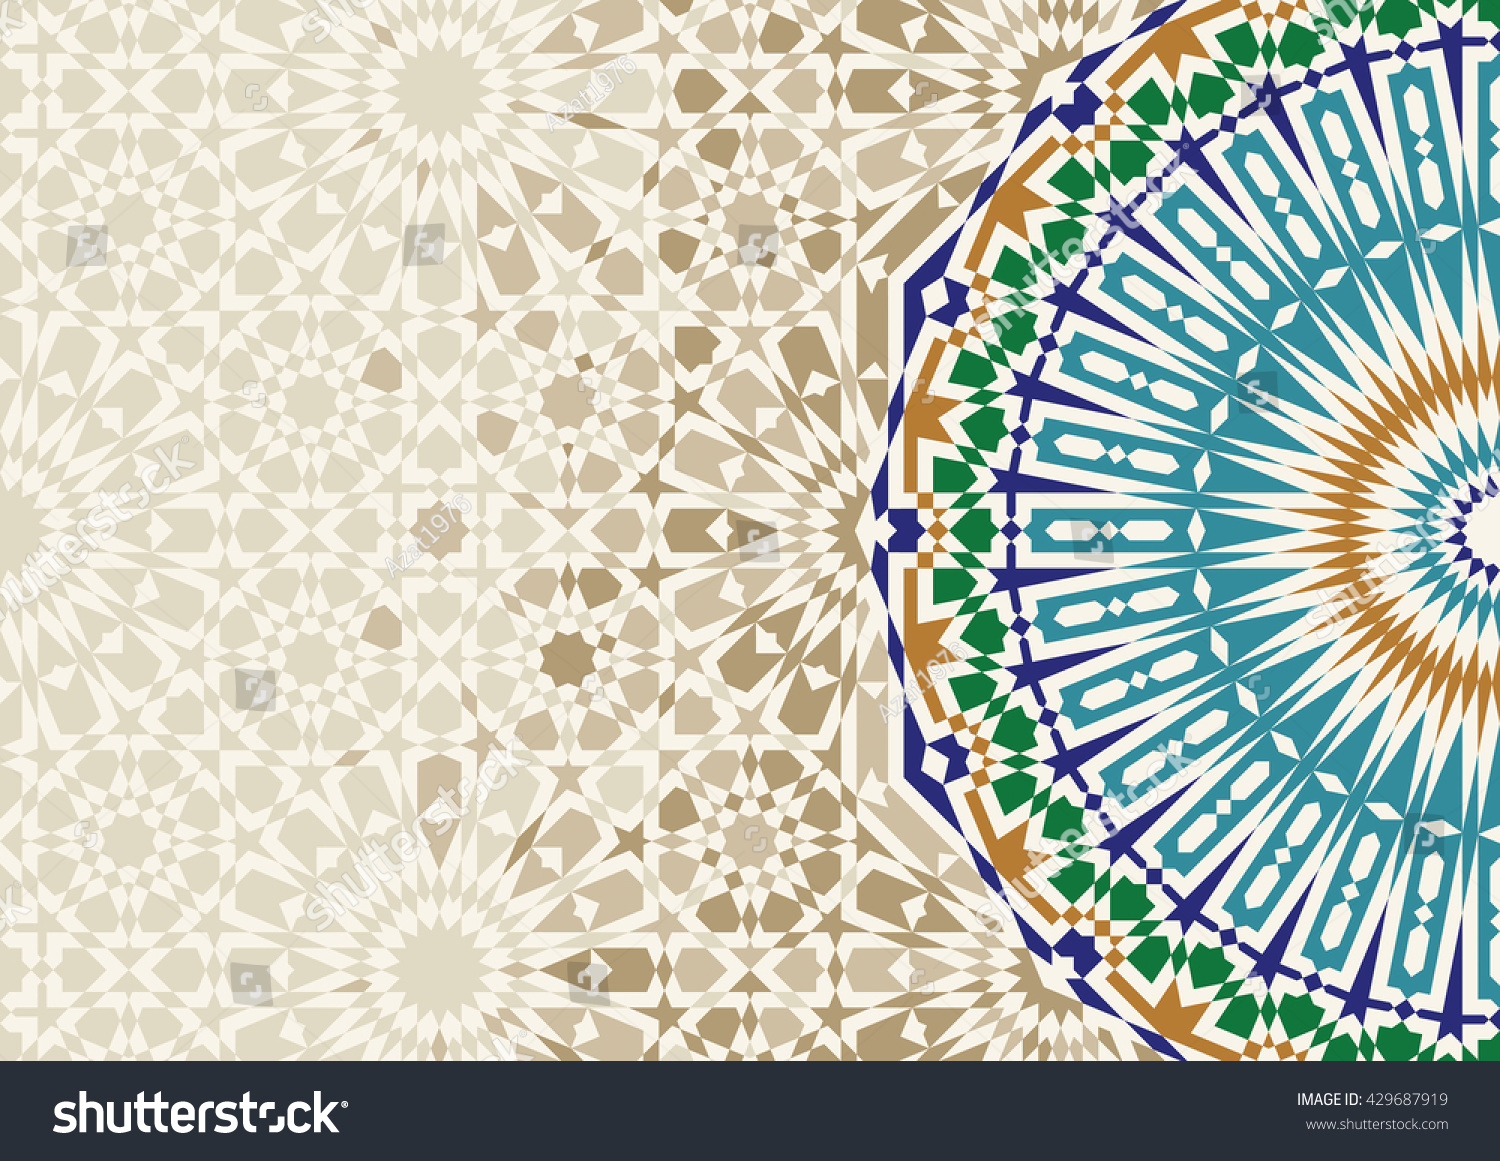 Disintegration Morocco Mosaic Abstract Template Arabic ...